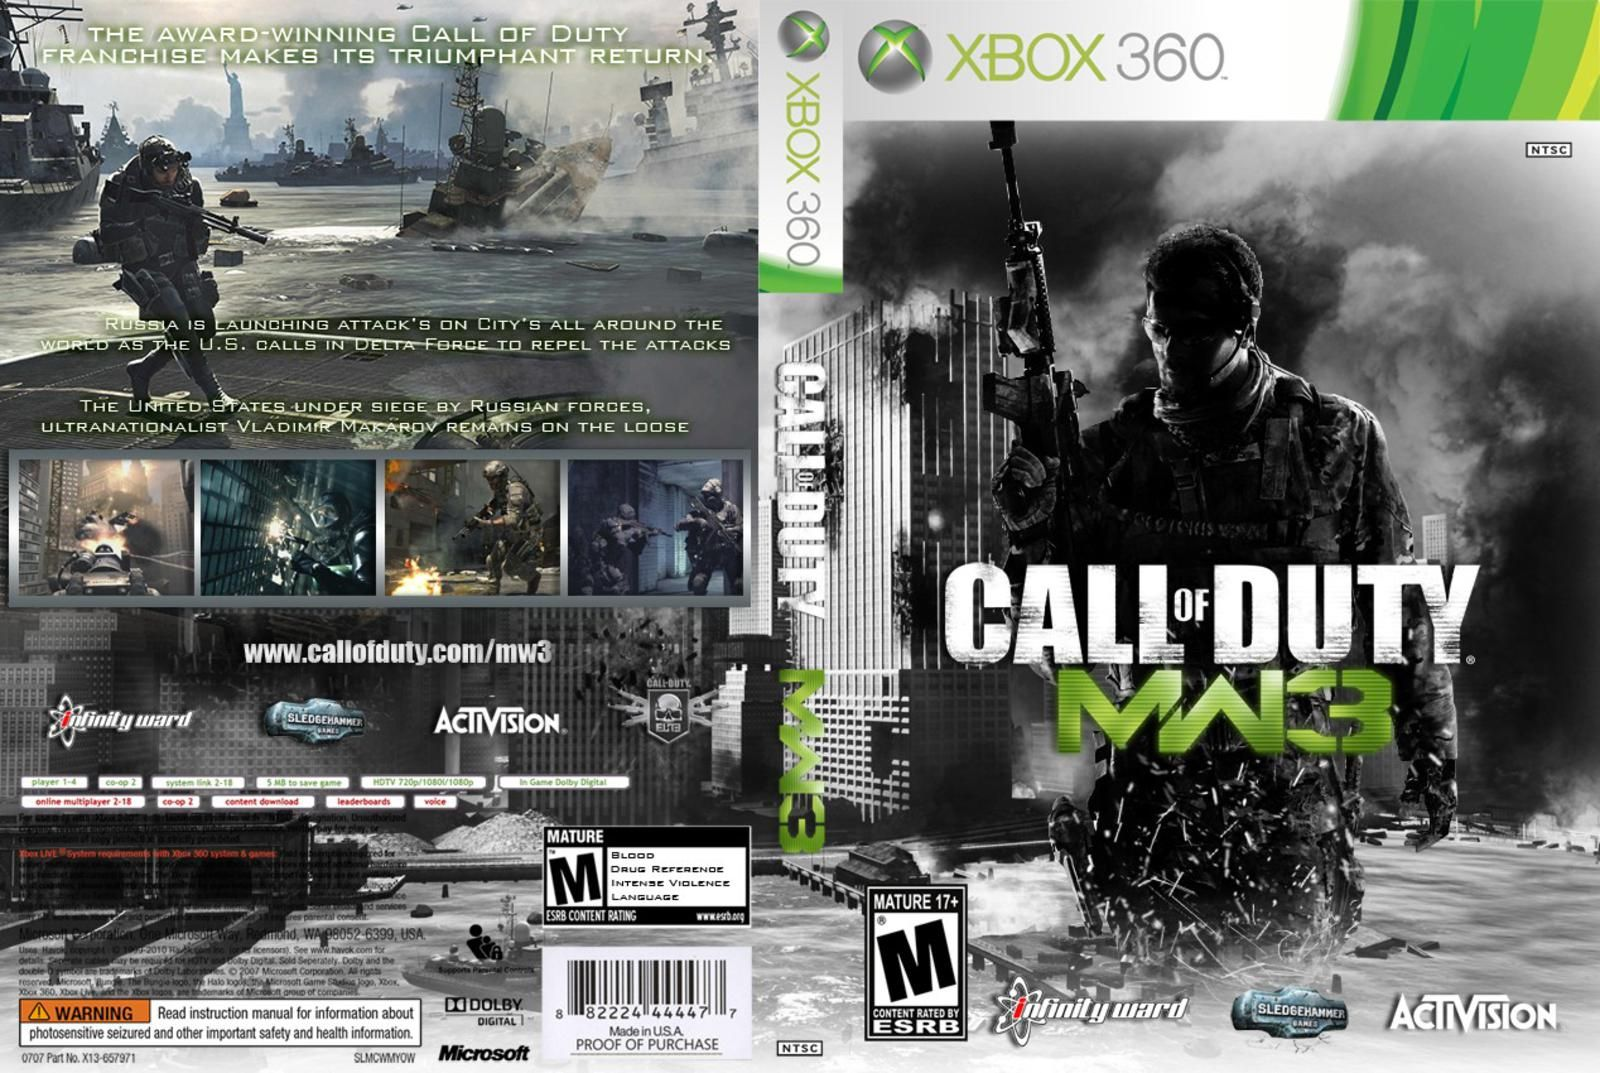 Callofduty3 Cover Capas Covers Xbox 360 Call Of Duty Modern Warfare 3 Modern Warfare Call Of Duty Xbox